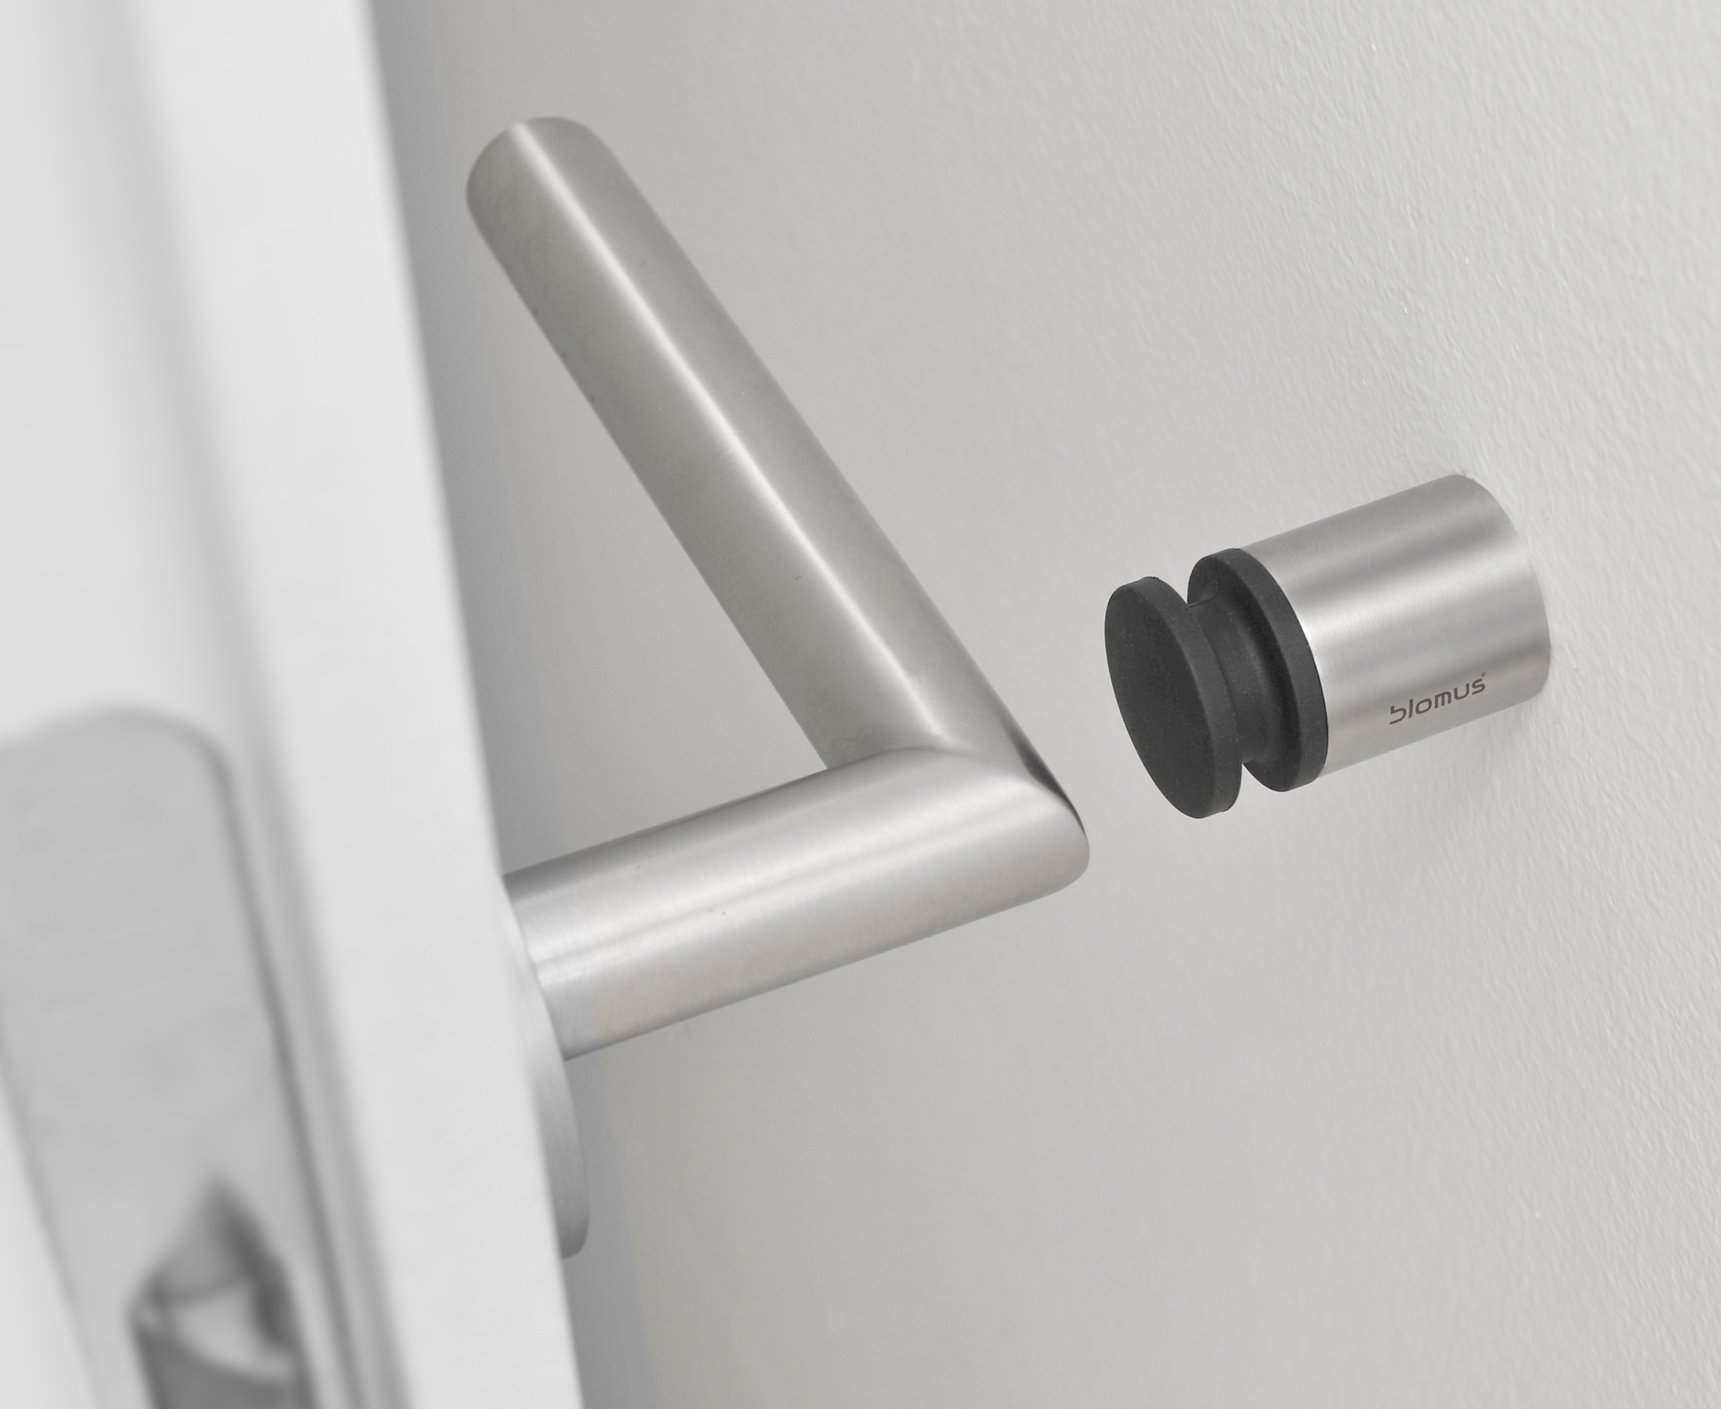 Wall Mounted Door Stop.Blomus 4 Cm Stainless Steel Plastic Entra Wall Mounted Door Stop